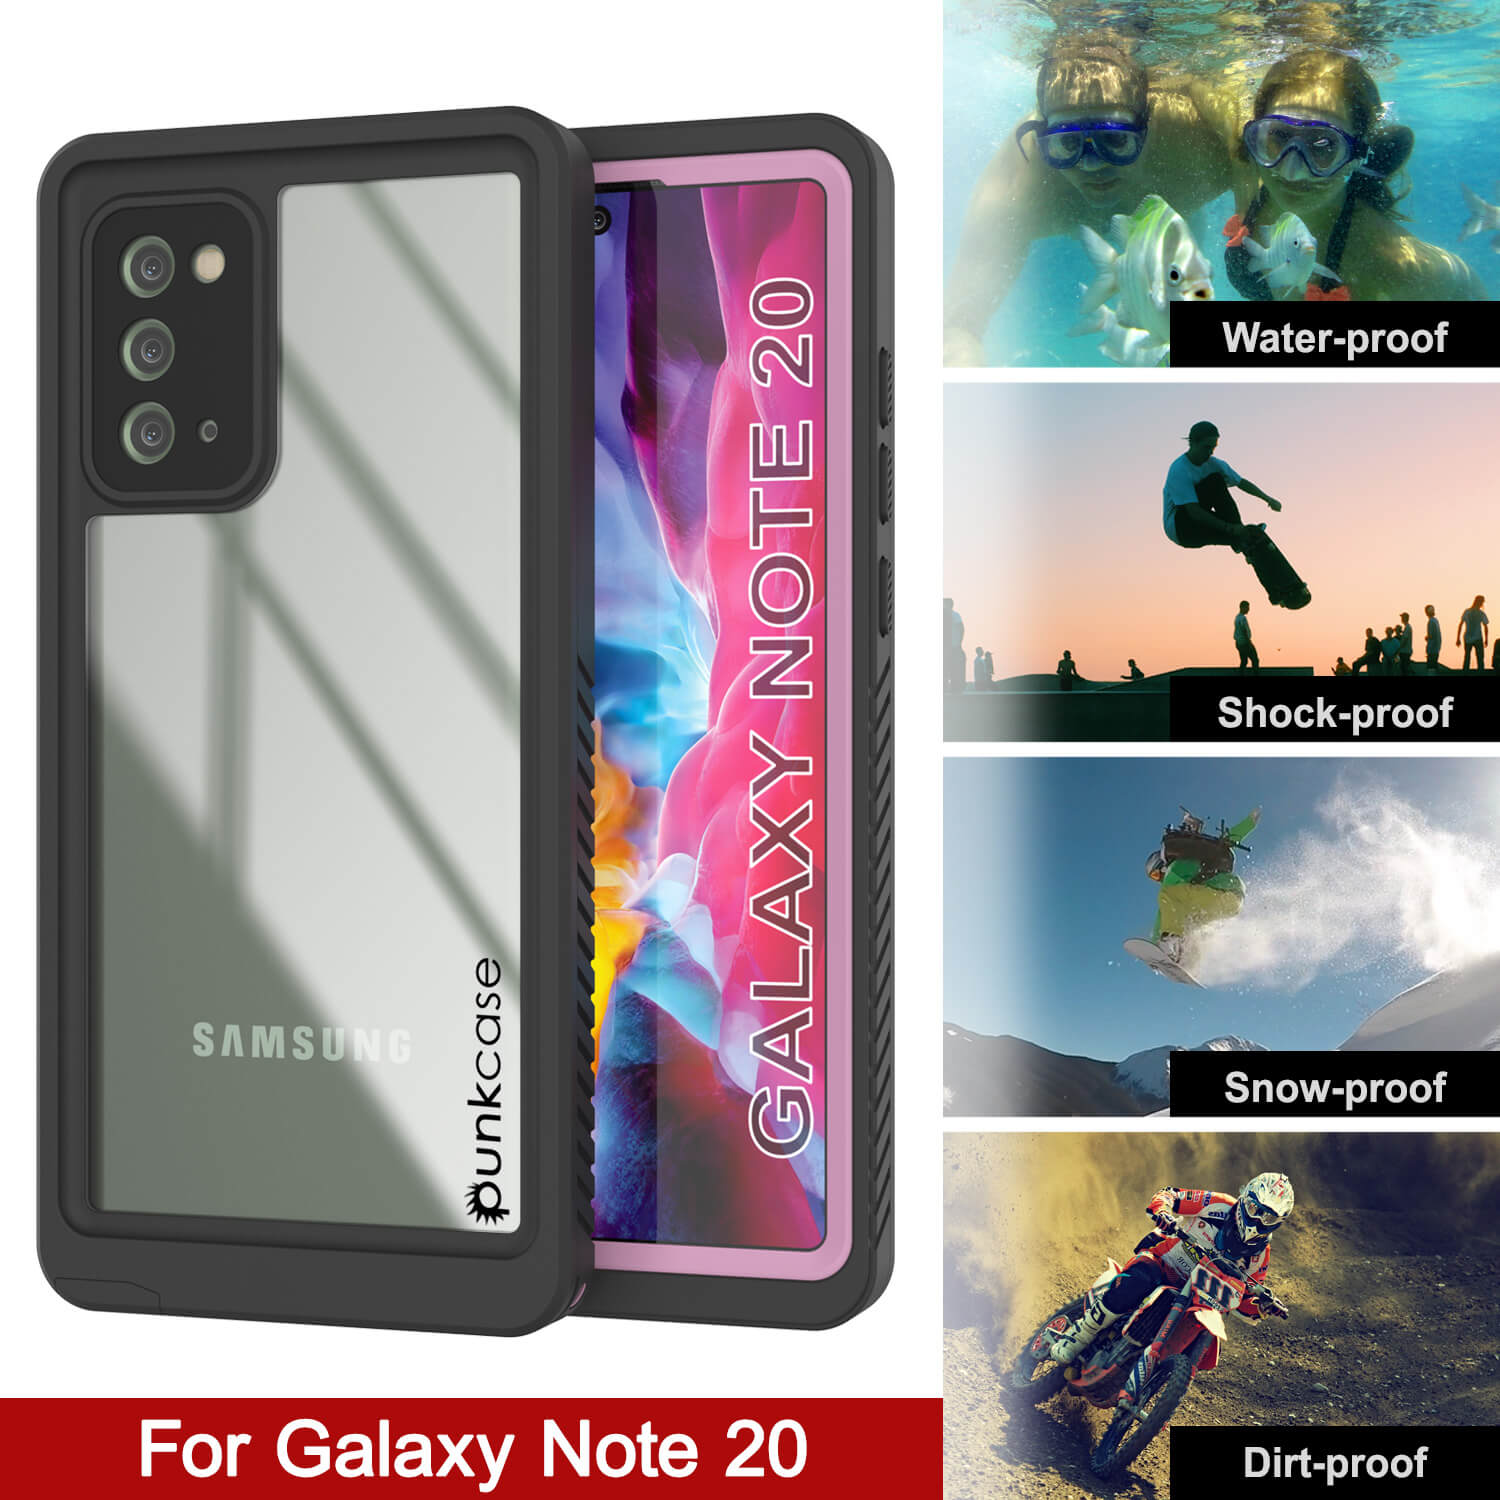 Galaxy Note 20 Case, Punkcase [Extreme Series] Armor Cover W/ Built In Screen Protector [Pink]